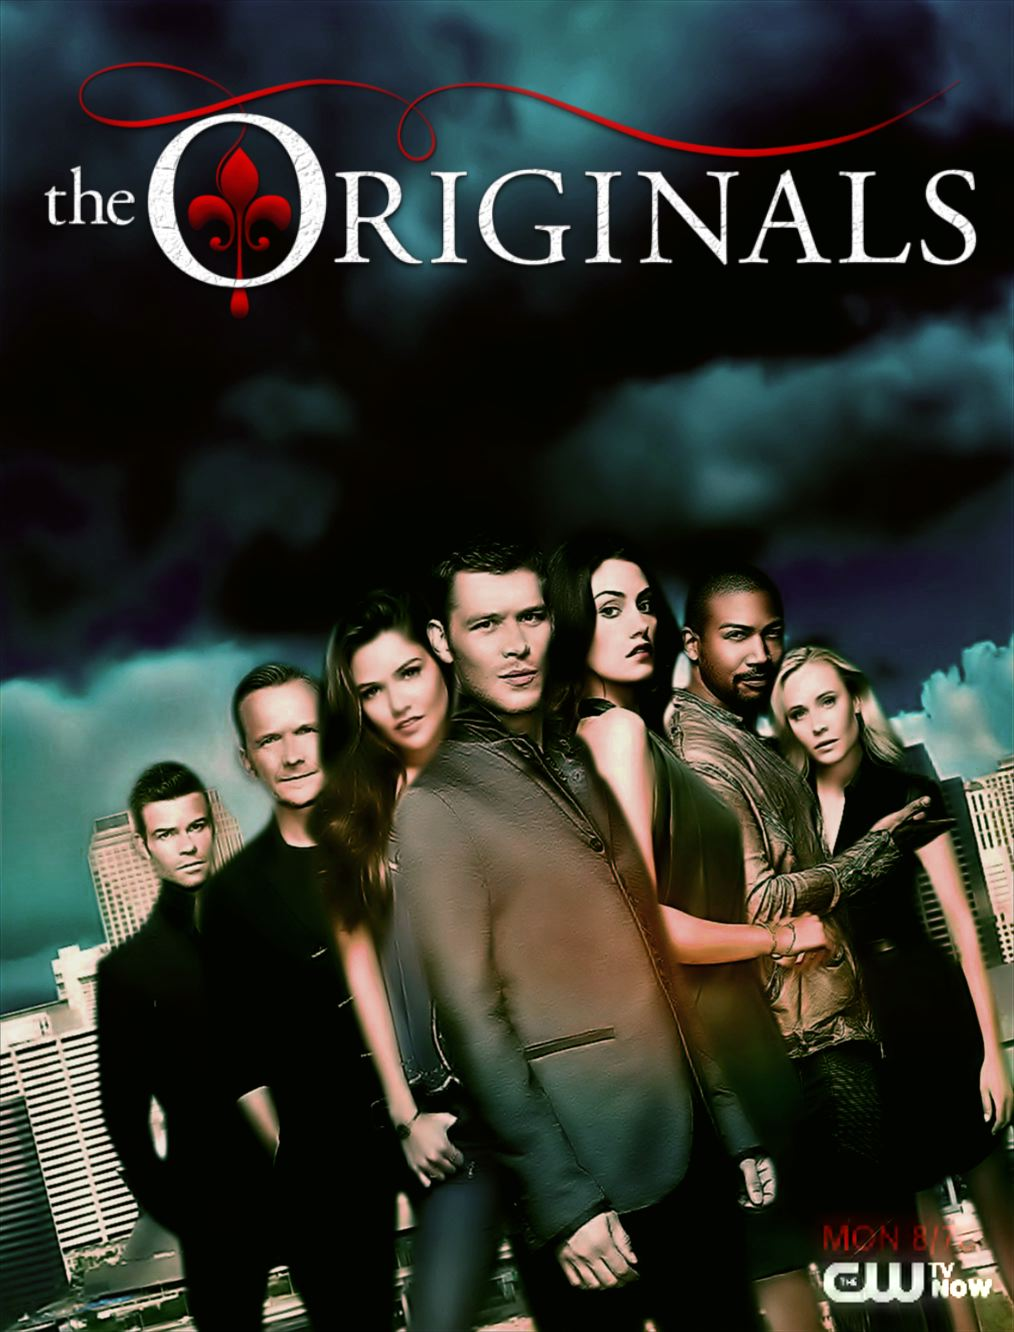 The Originals Season 2 Key Art by MacSchaer on DeviantArt